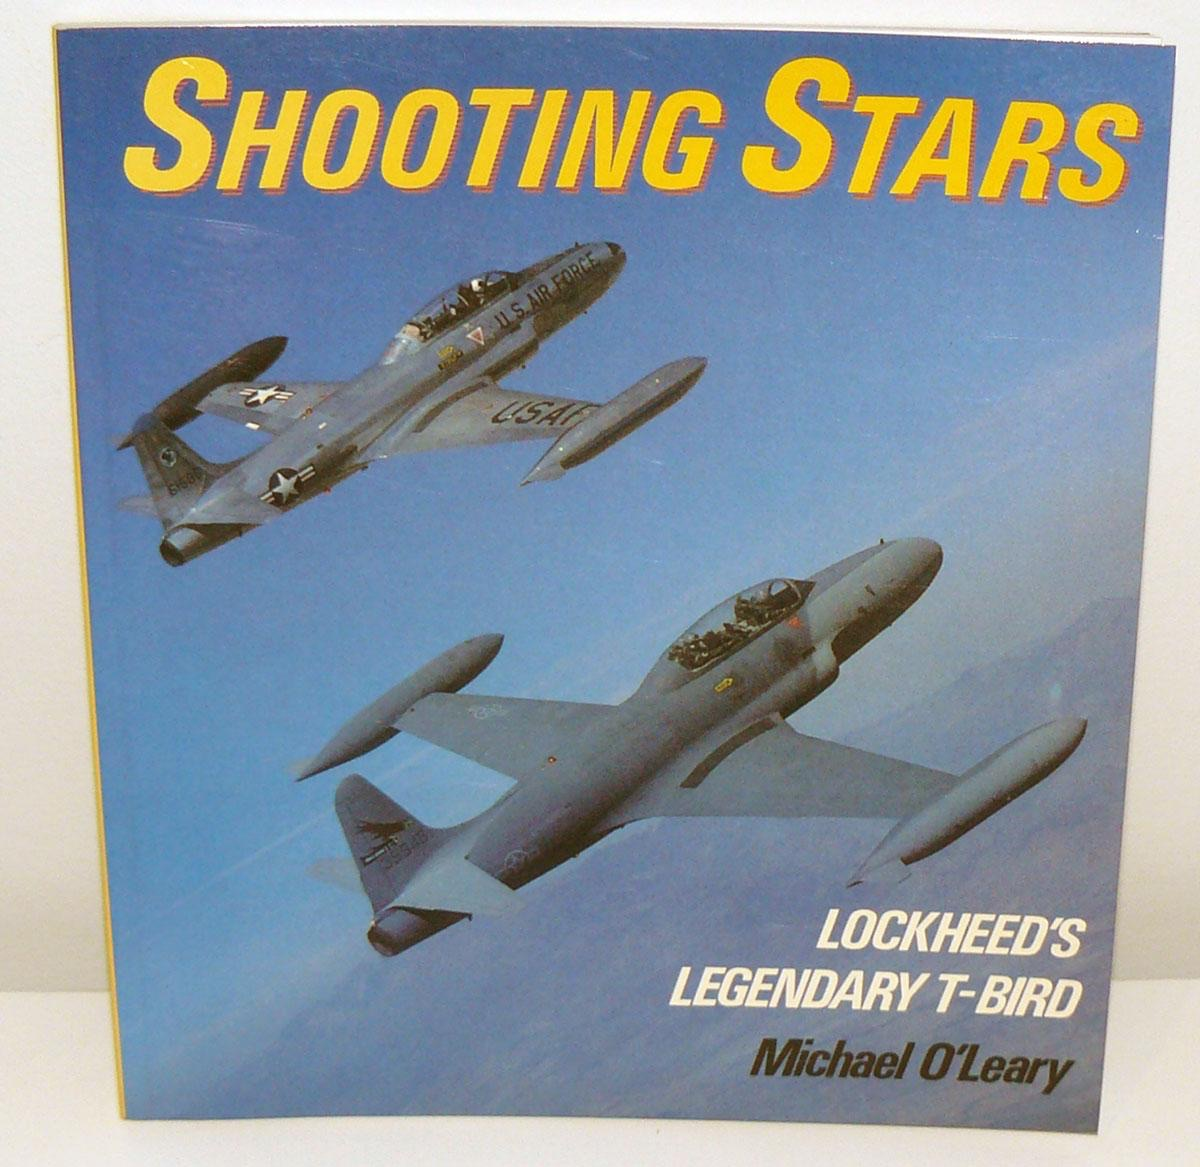 Shooting Stars Lockheed's Legendary T-Bird by Michael O'Leary